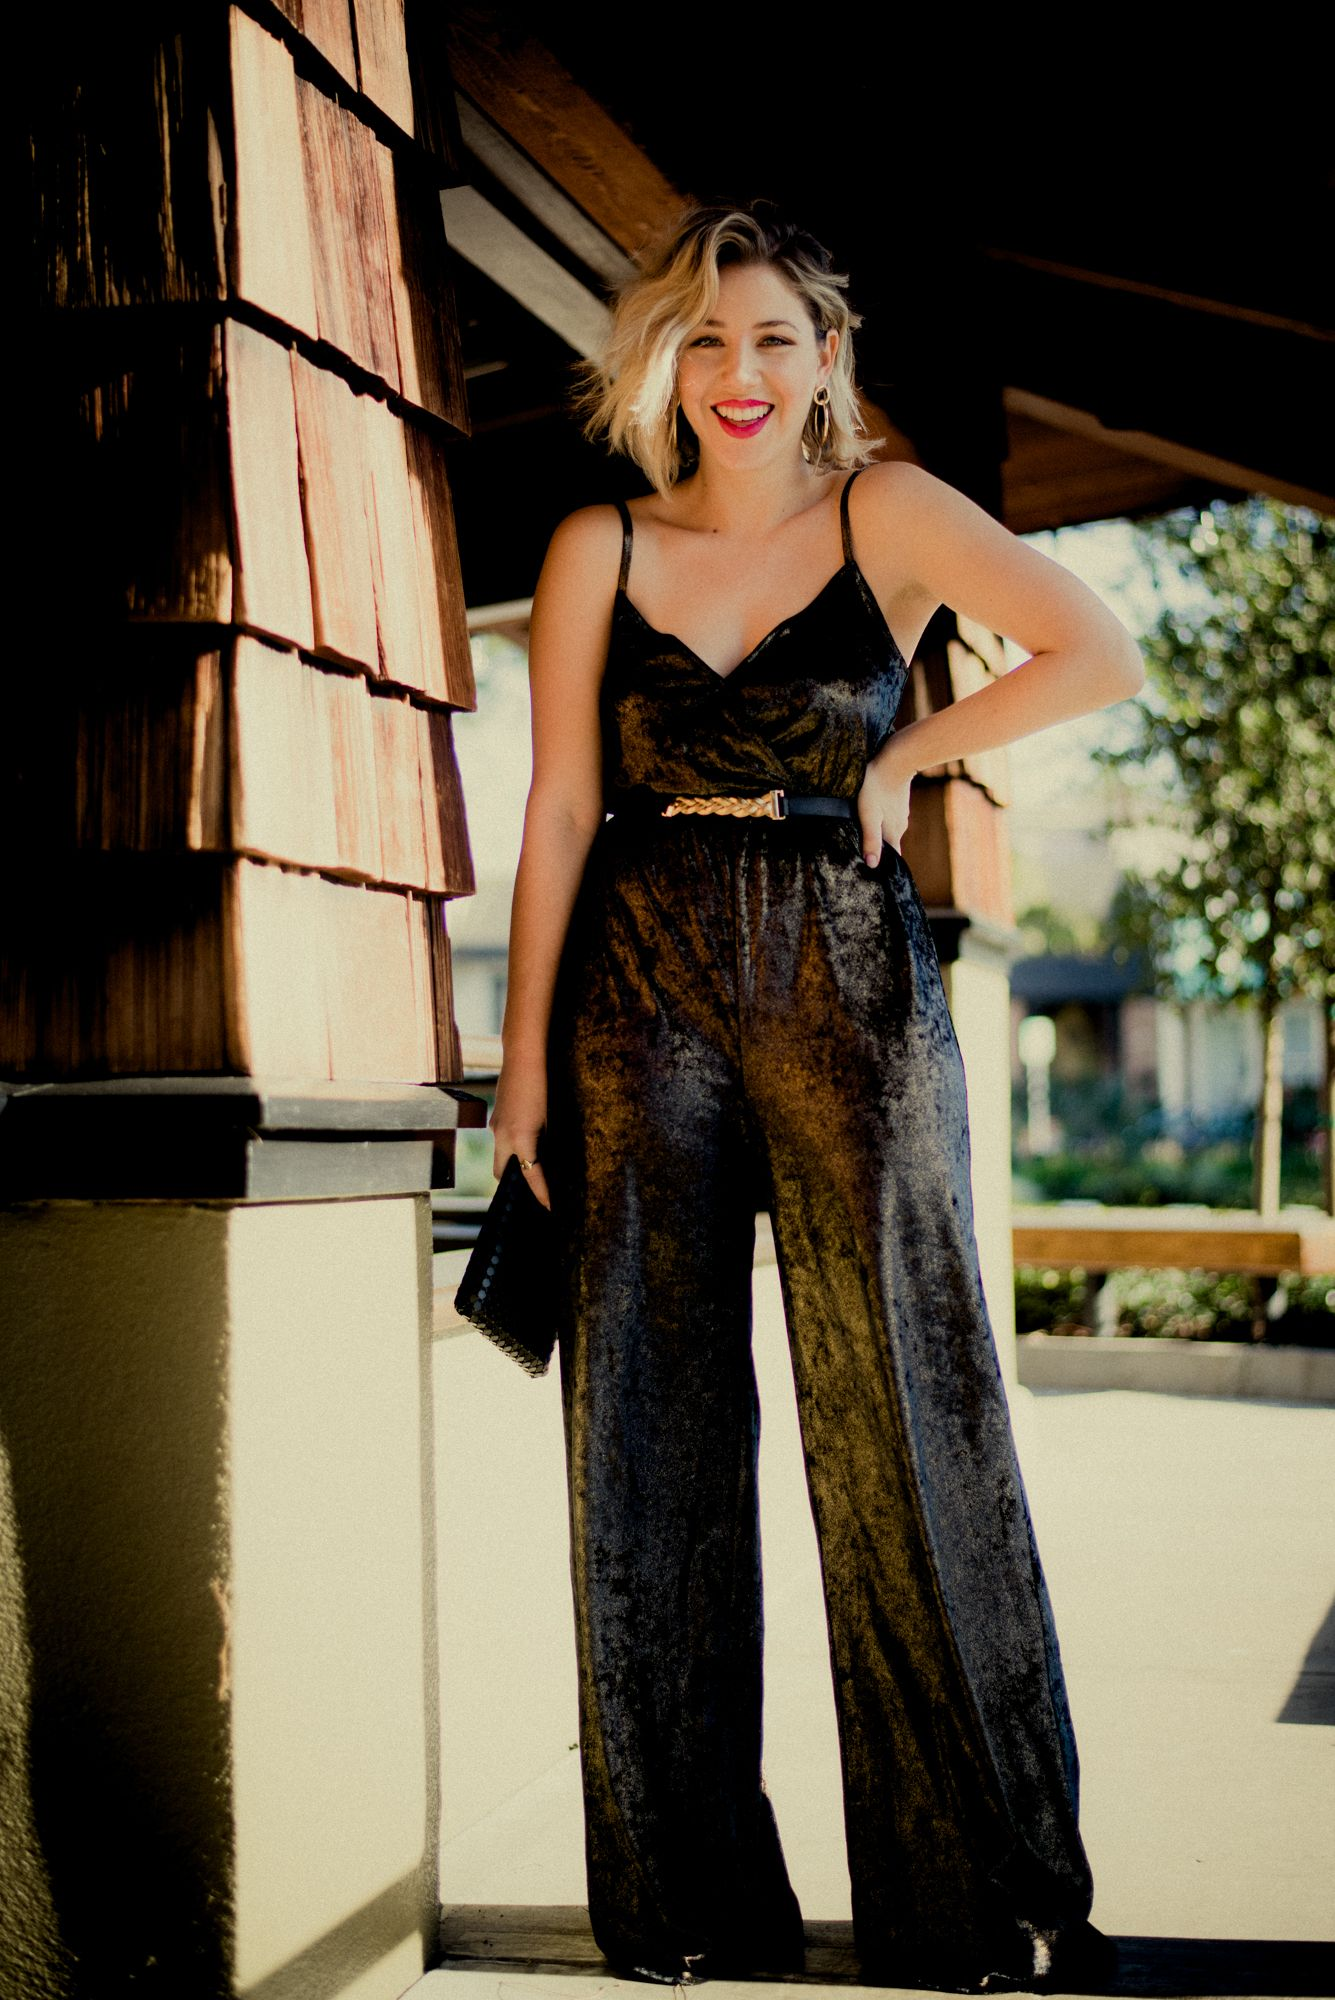 New Years Eve Outfit Ideas perfect for Curvy Girls. Try an empire waist  metallic jumpsuit by show me your mumu. Add accessories like a skinny belt  by ... a14e580b8